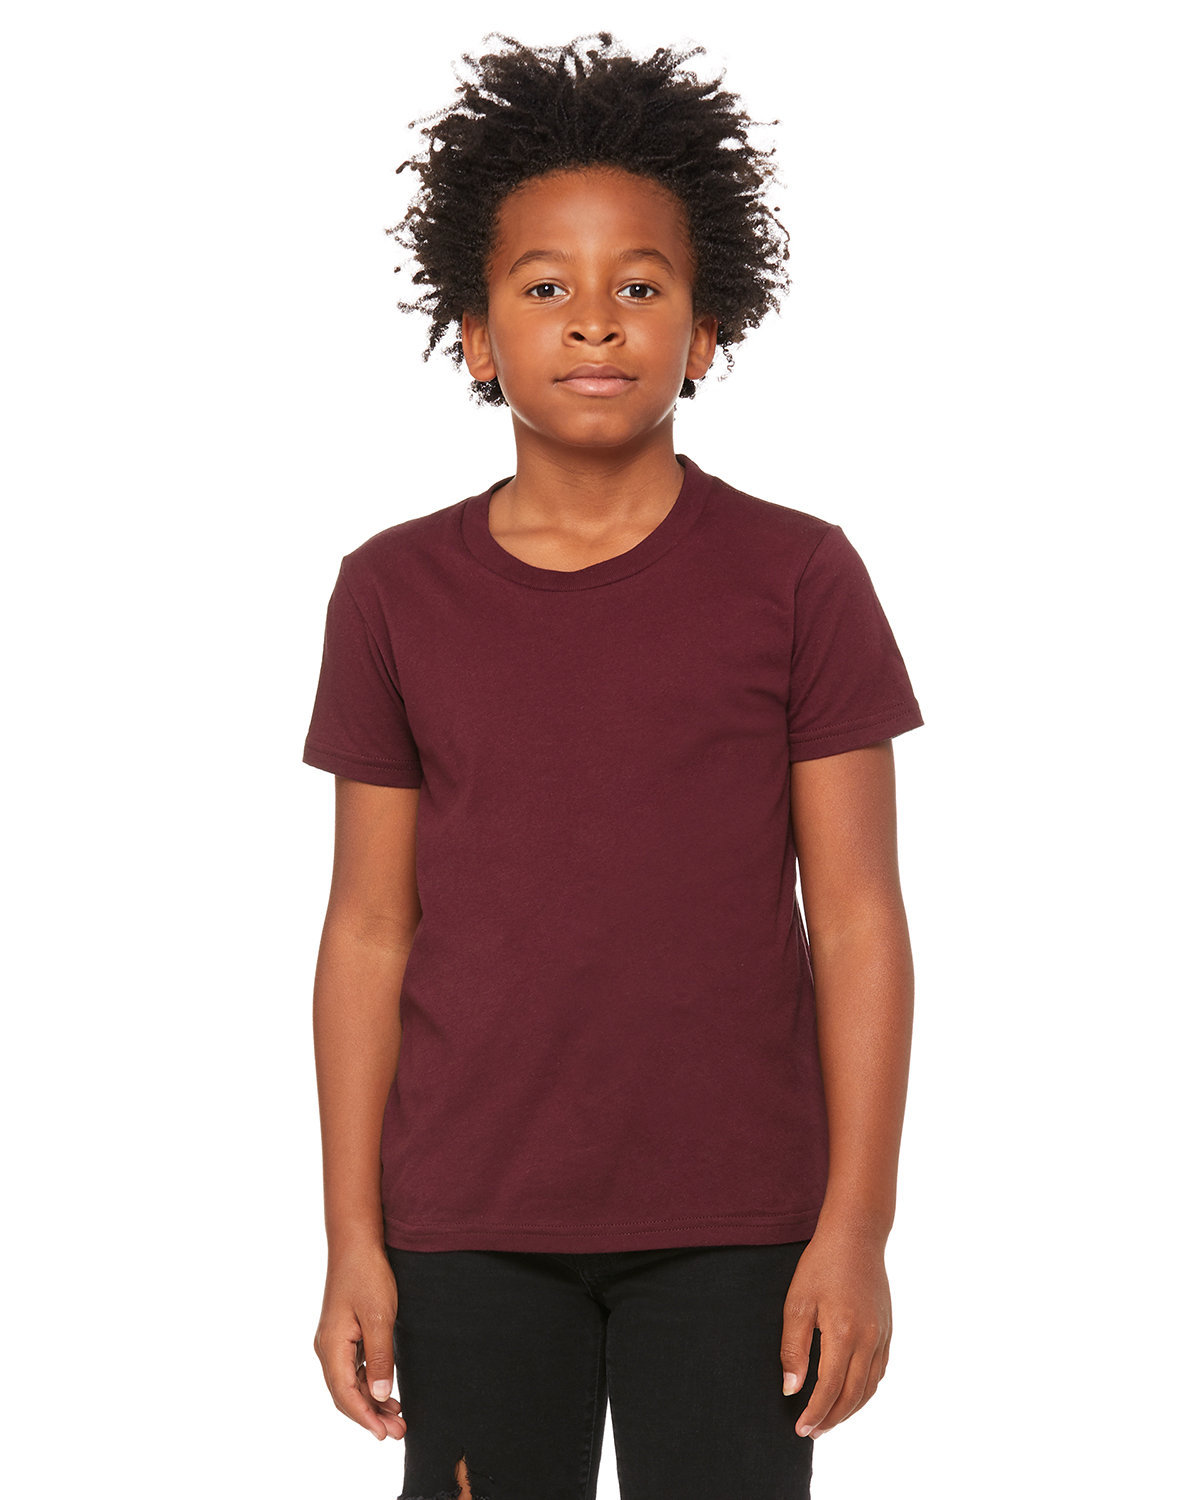 Bella + Canvas Youth Jersey T-Shirt MAROON